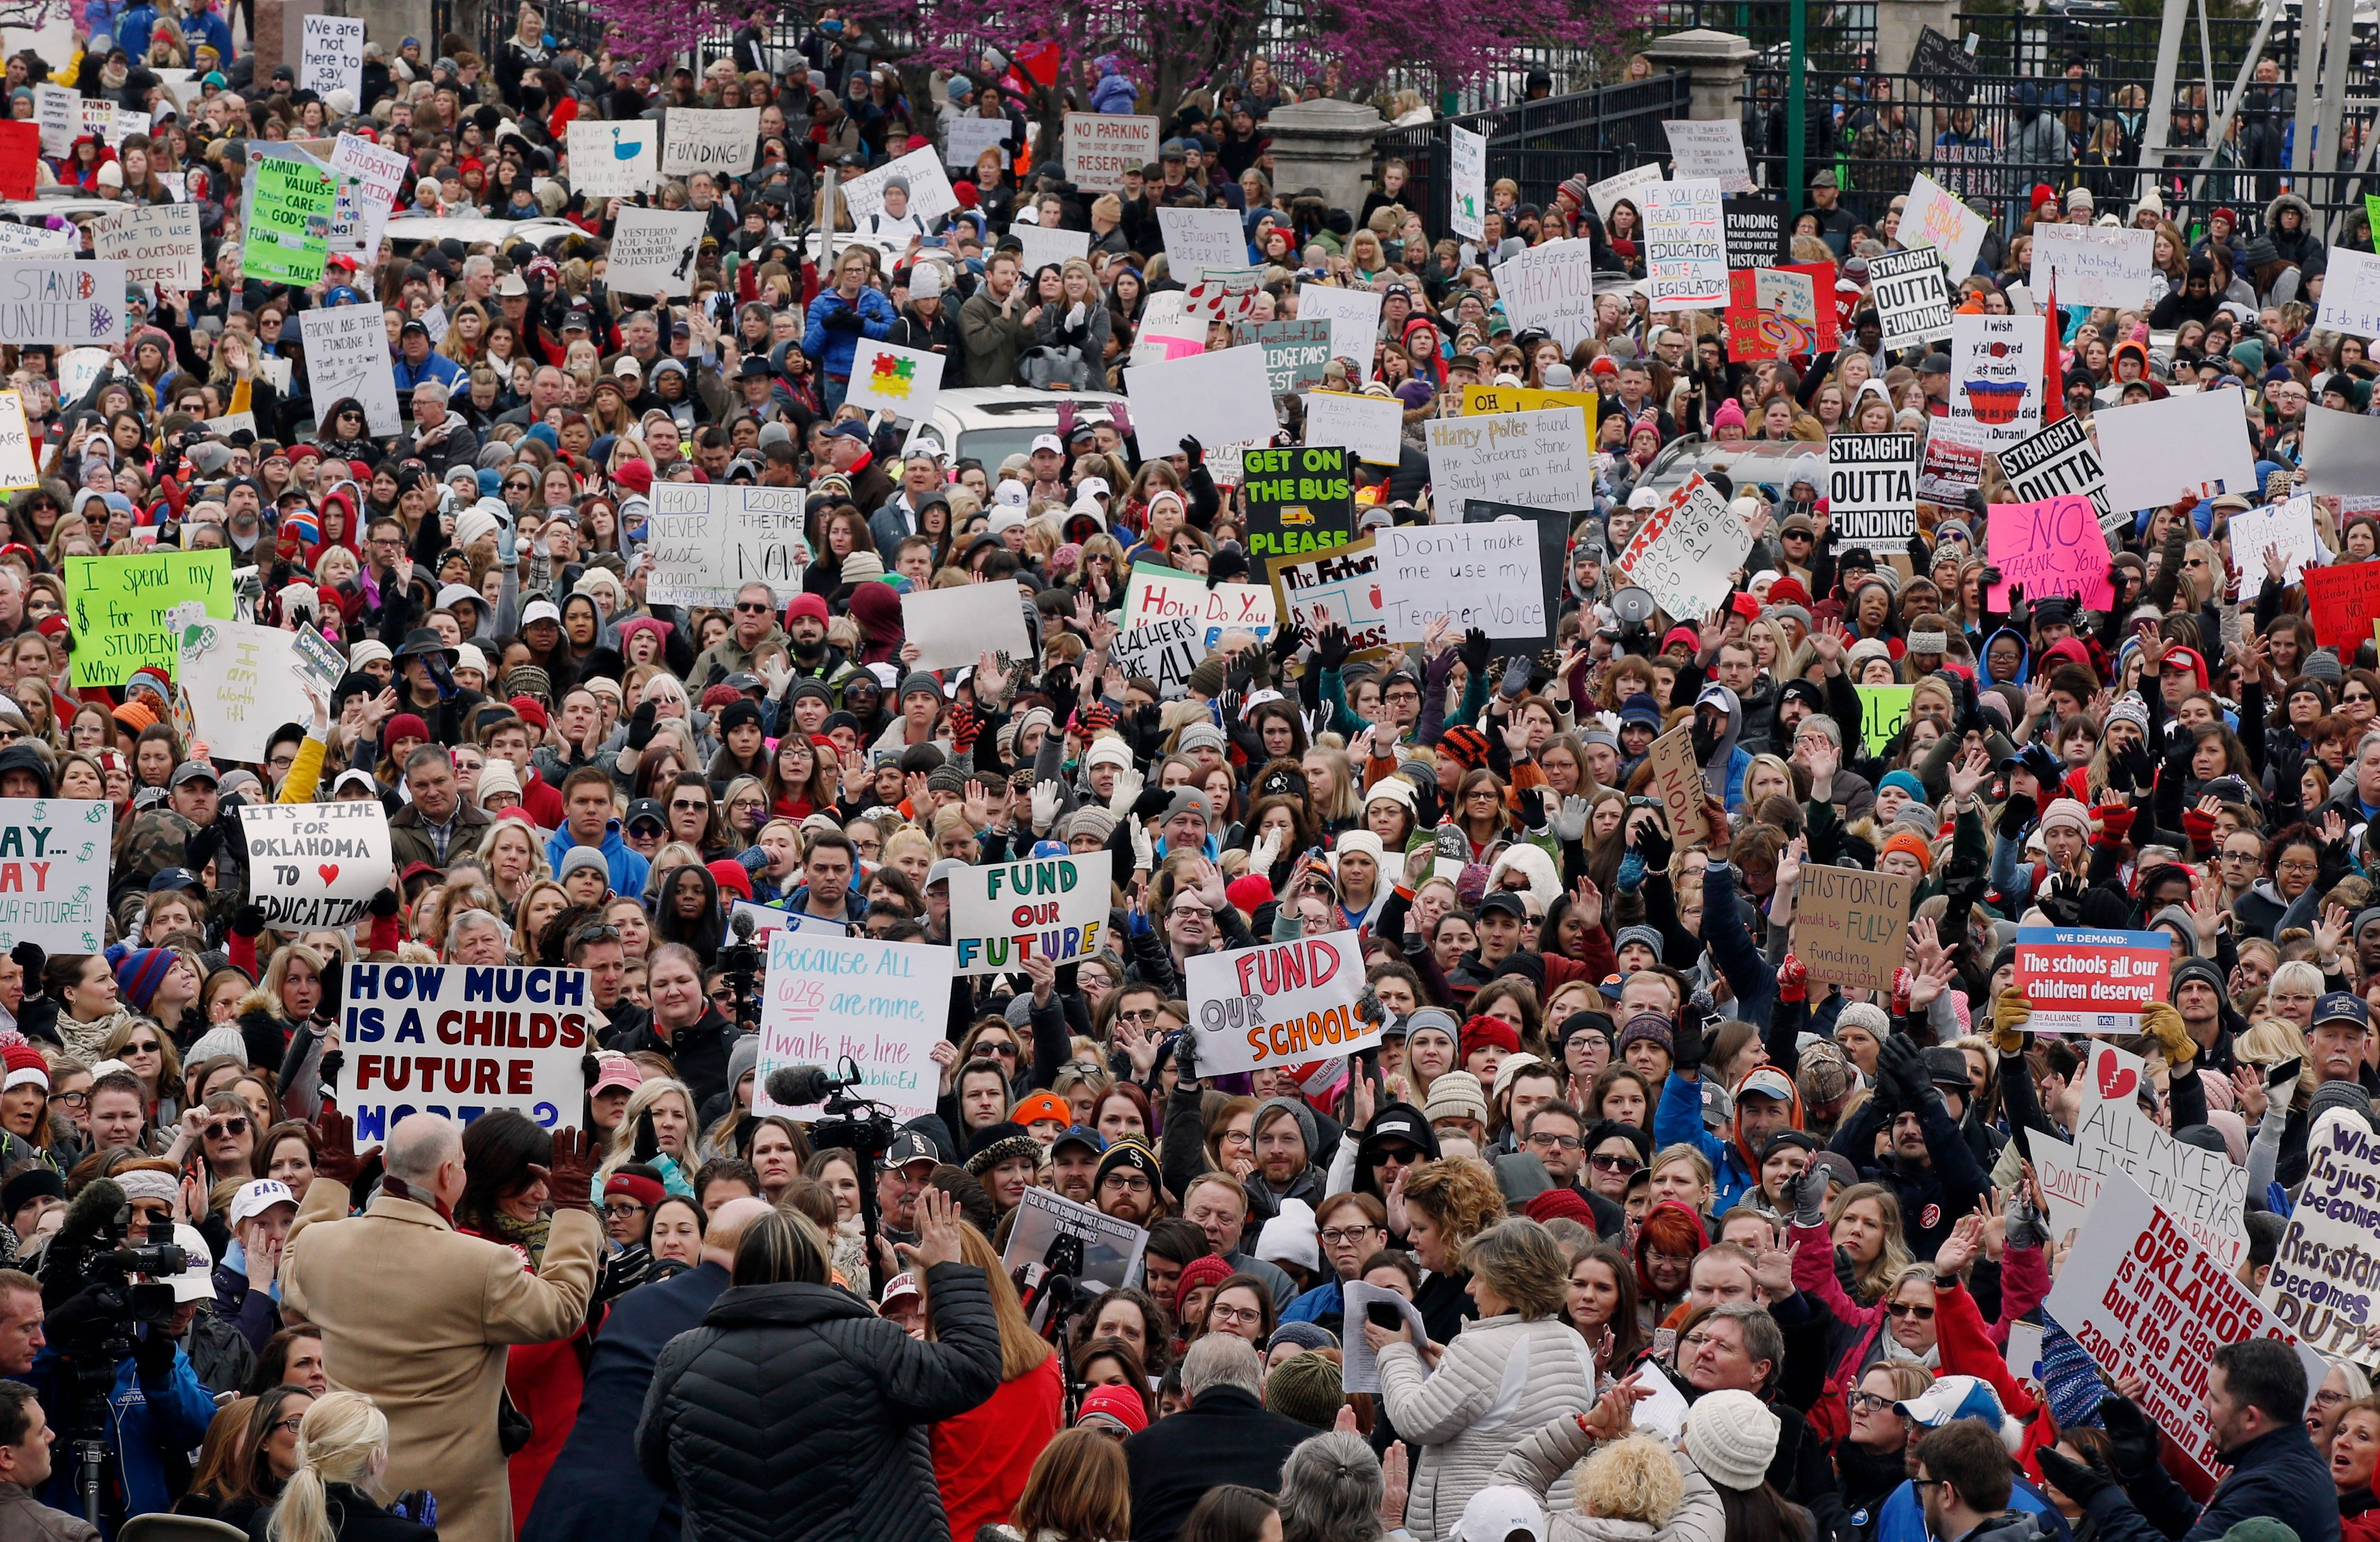 The crowd cheers during a teacher rally at the state Capitol in Oklahoma City, Monday, April 2, 2018. Teachers were holding separate protests in Oklahoma and Kentucky on Monday to voice dissatisfaction with issues like pay and pensions. (AP Photo/Sue Ogrocki)